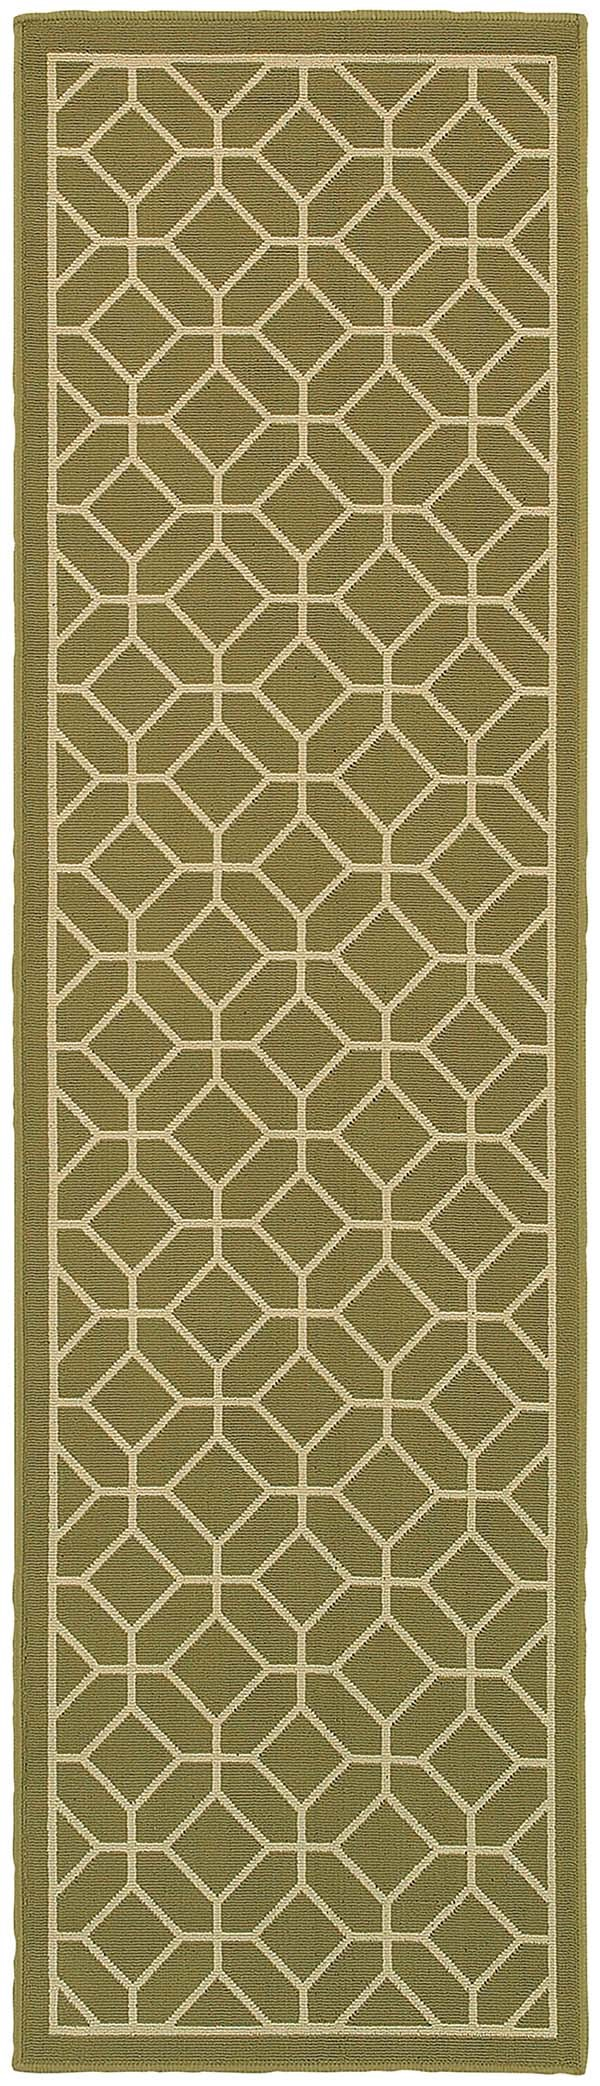 Green, Ivory (B) Moroccan Area Rug